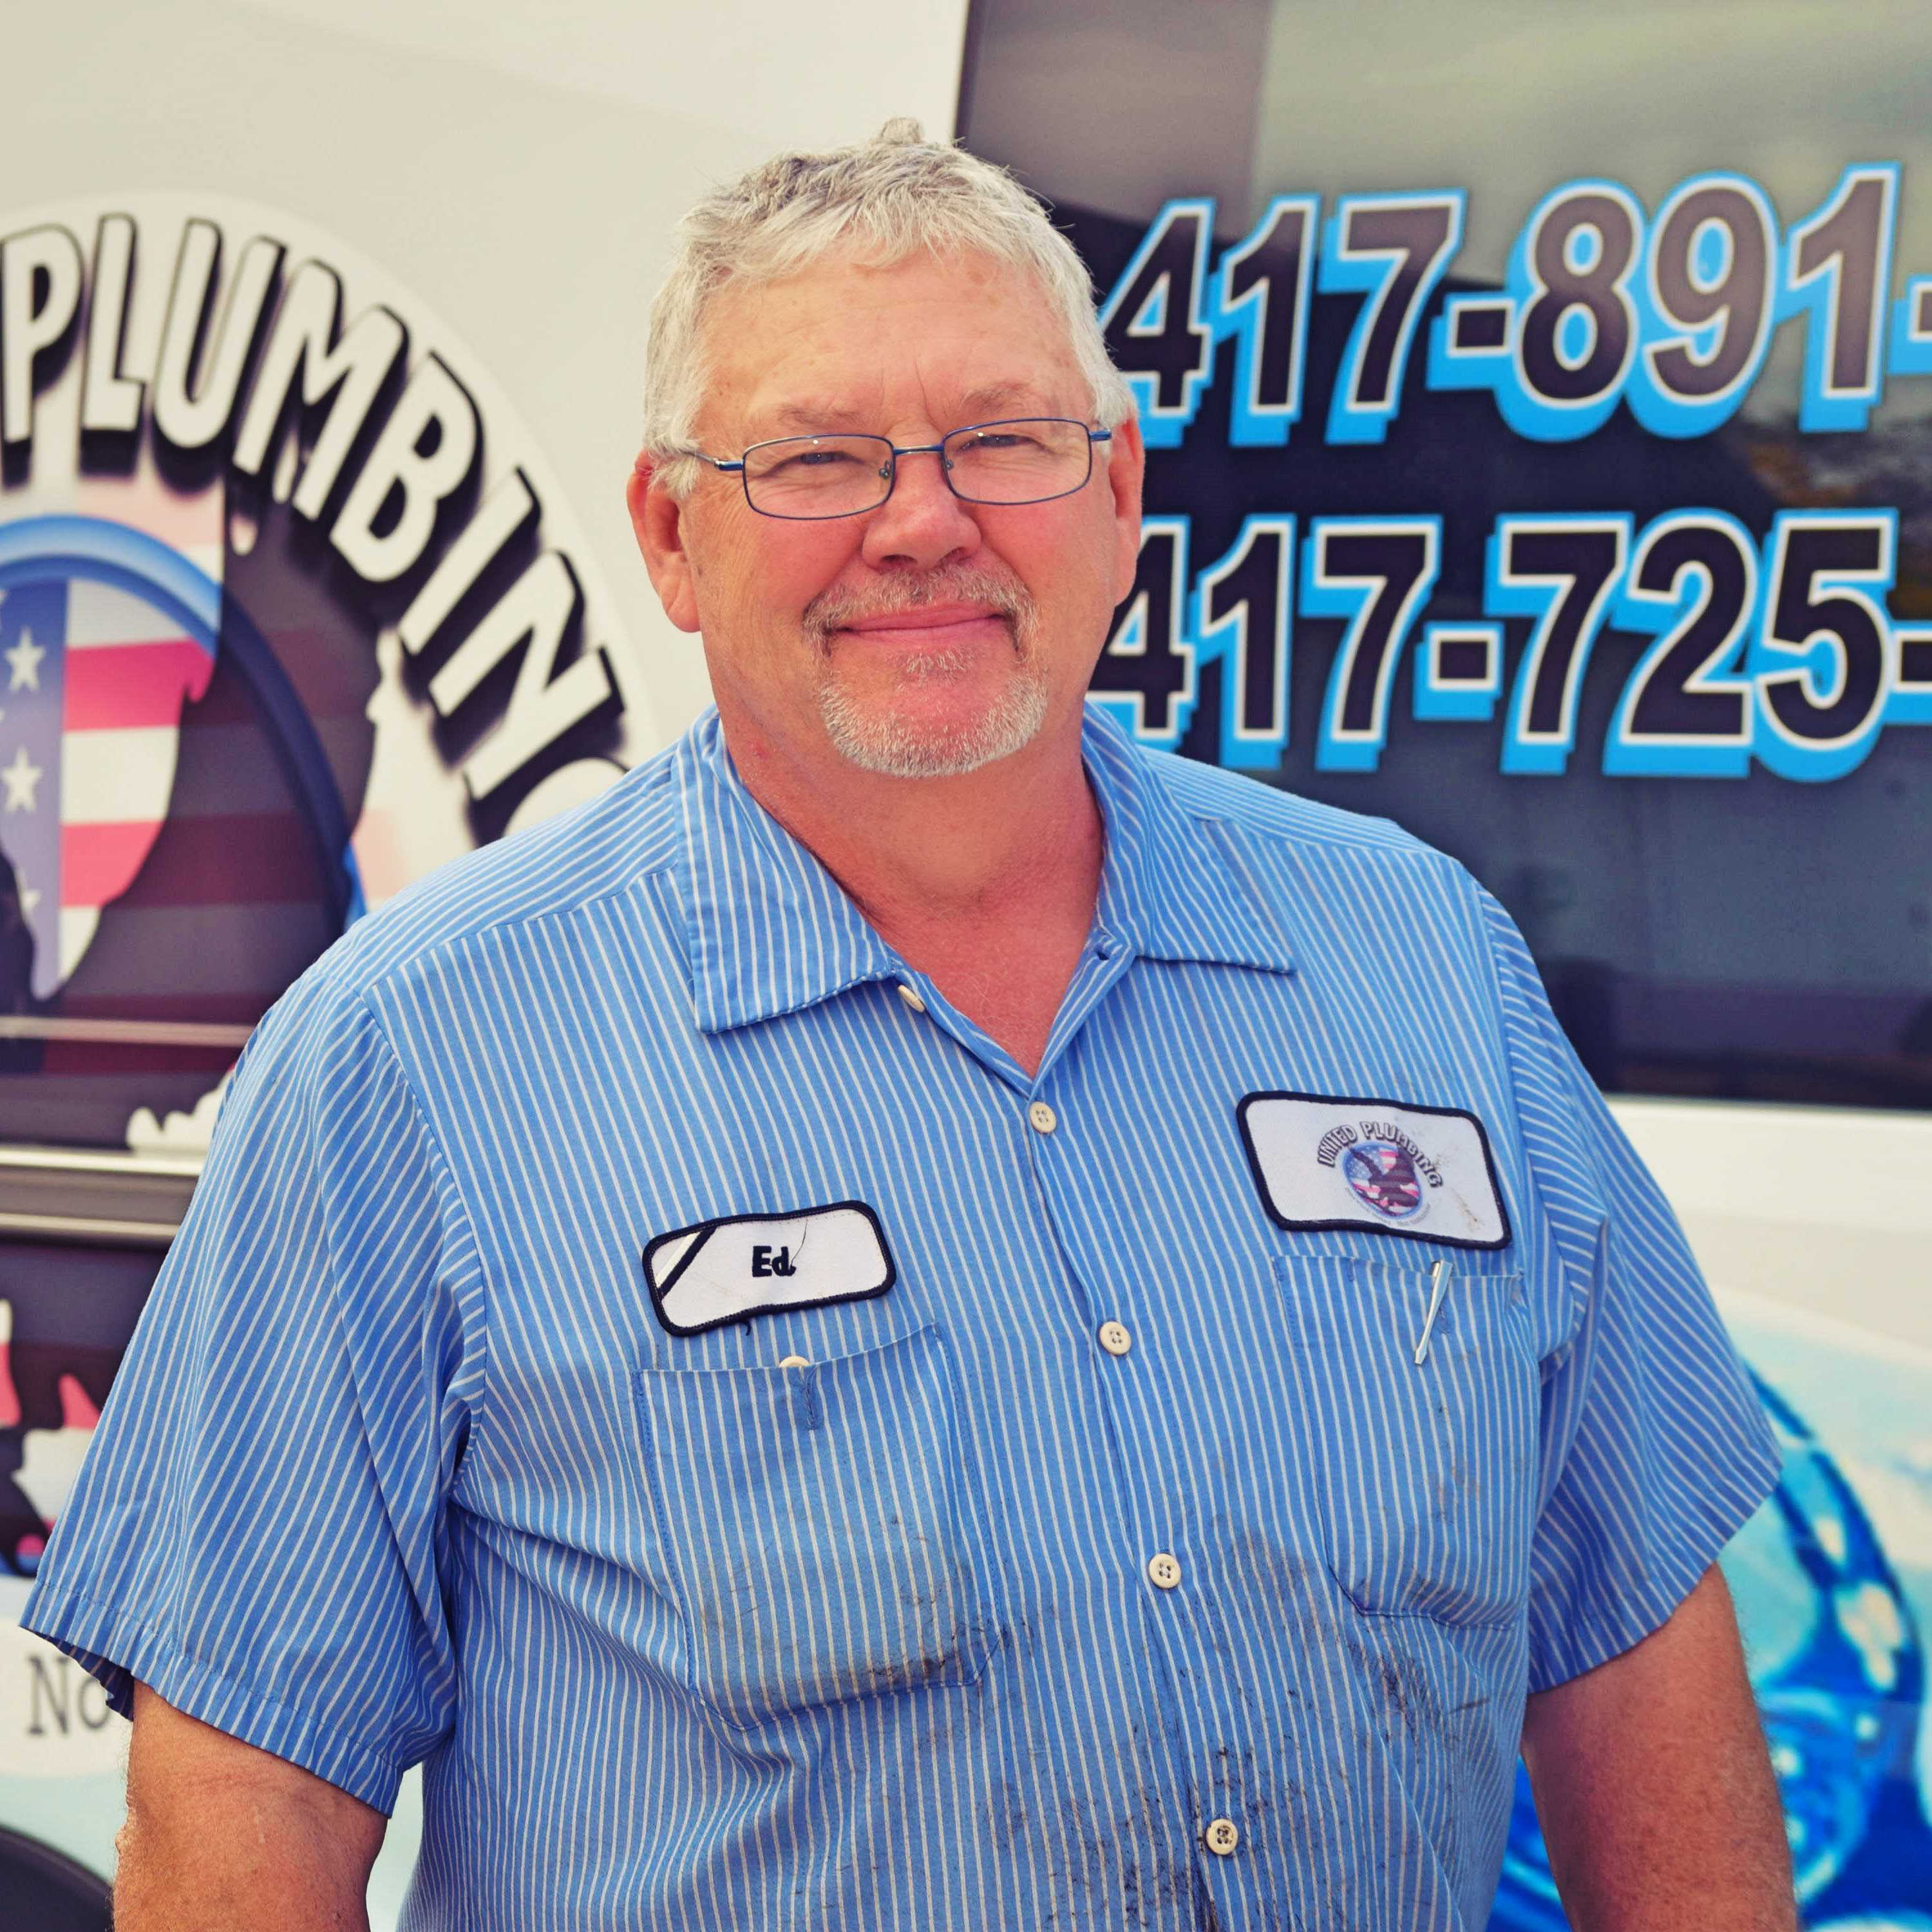 Ed Culbertson - Owner Square Headshot - United Plumbing Springfield MO